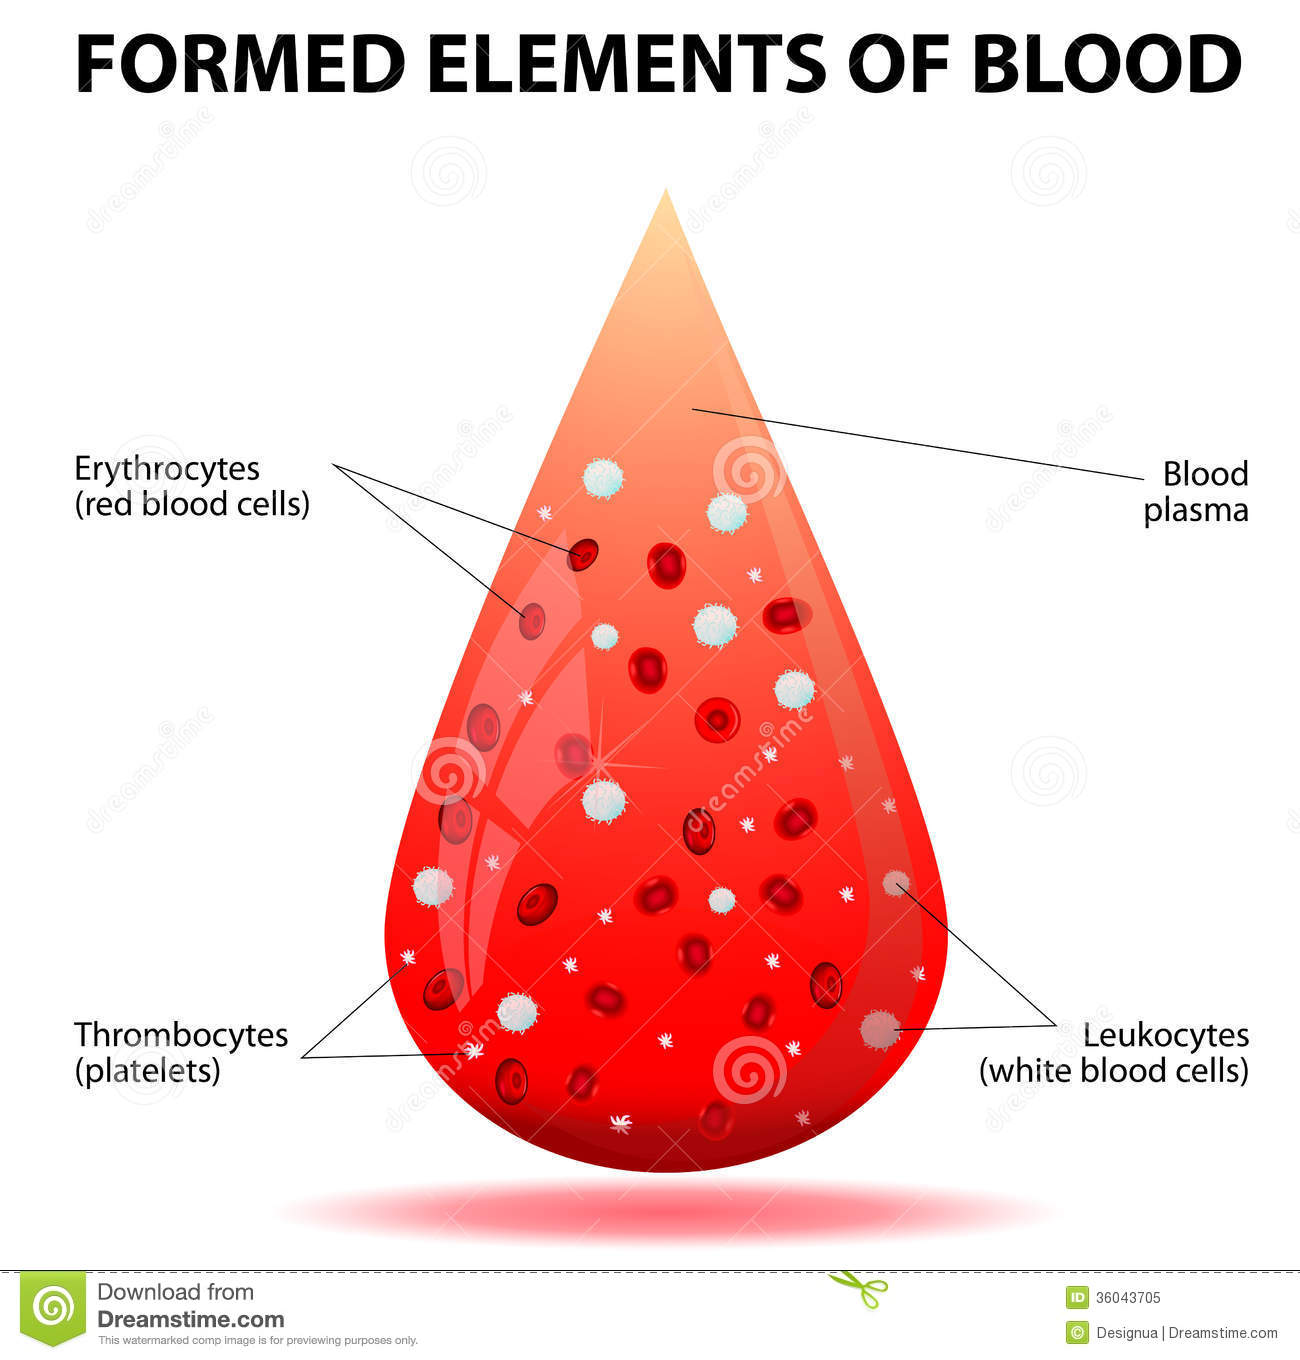 elements of blood diagram elements database wiring diagram blood plasma and formed elements in test tube stock photo image